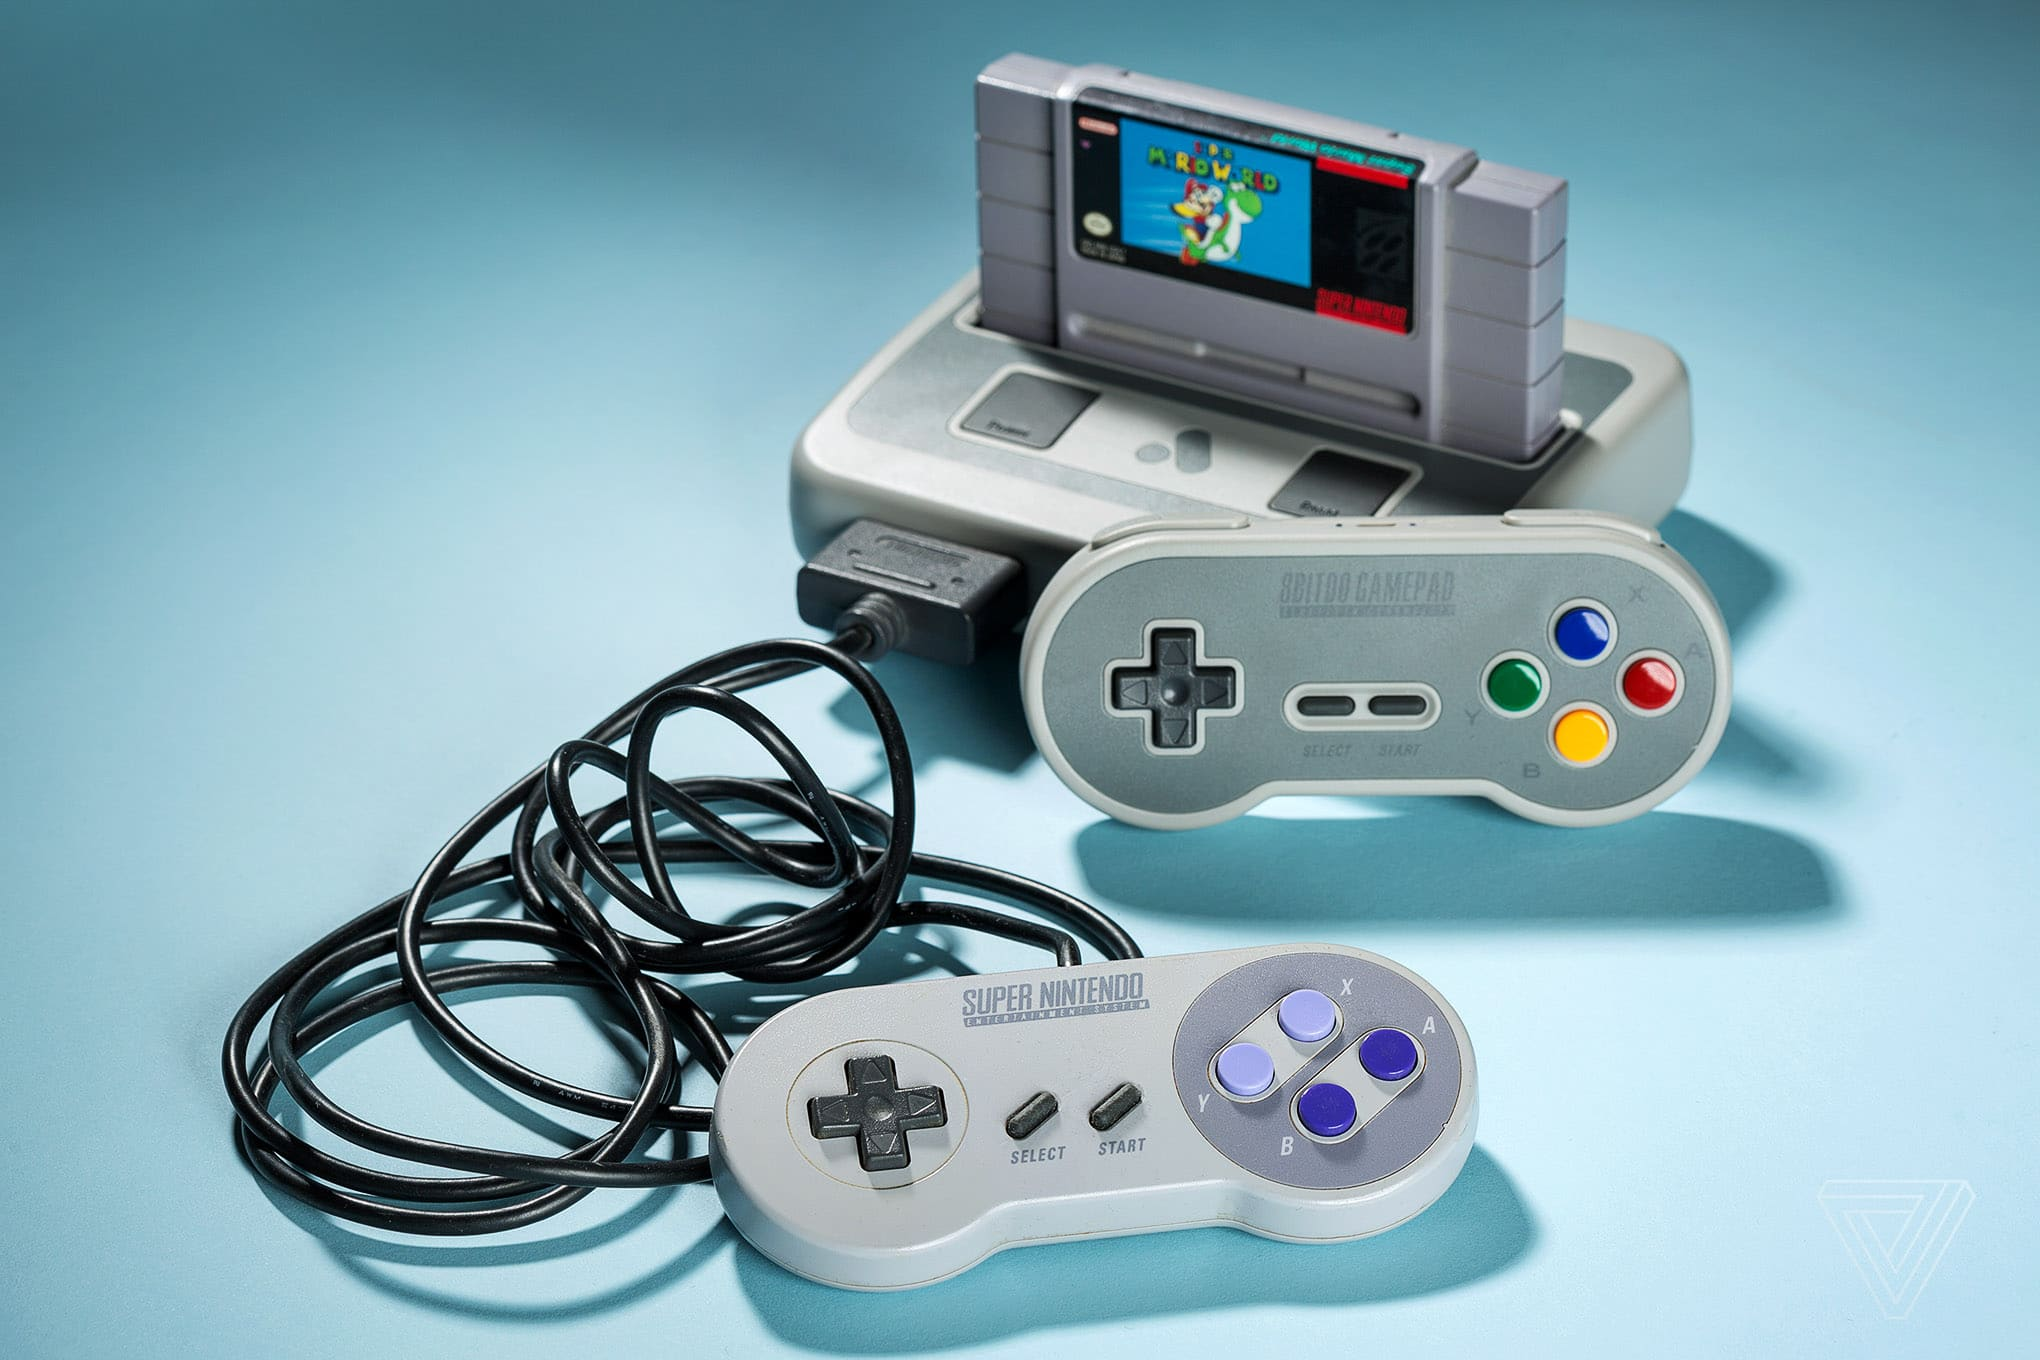 Tech Okay – Analogue Super Nt review: a sleek and powerful